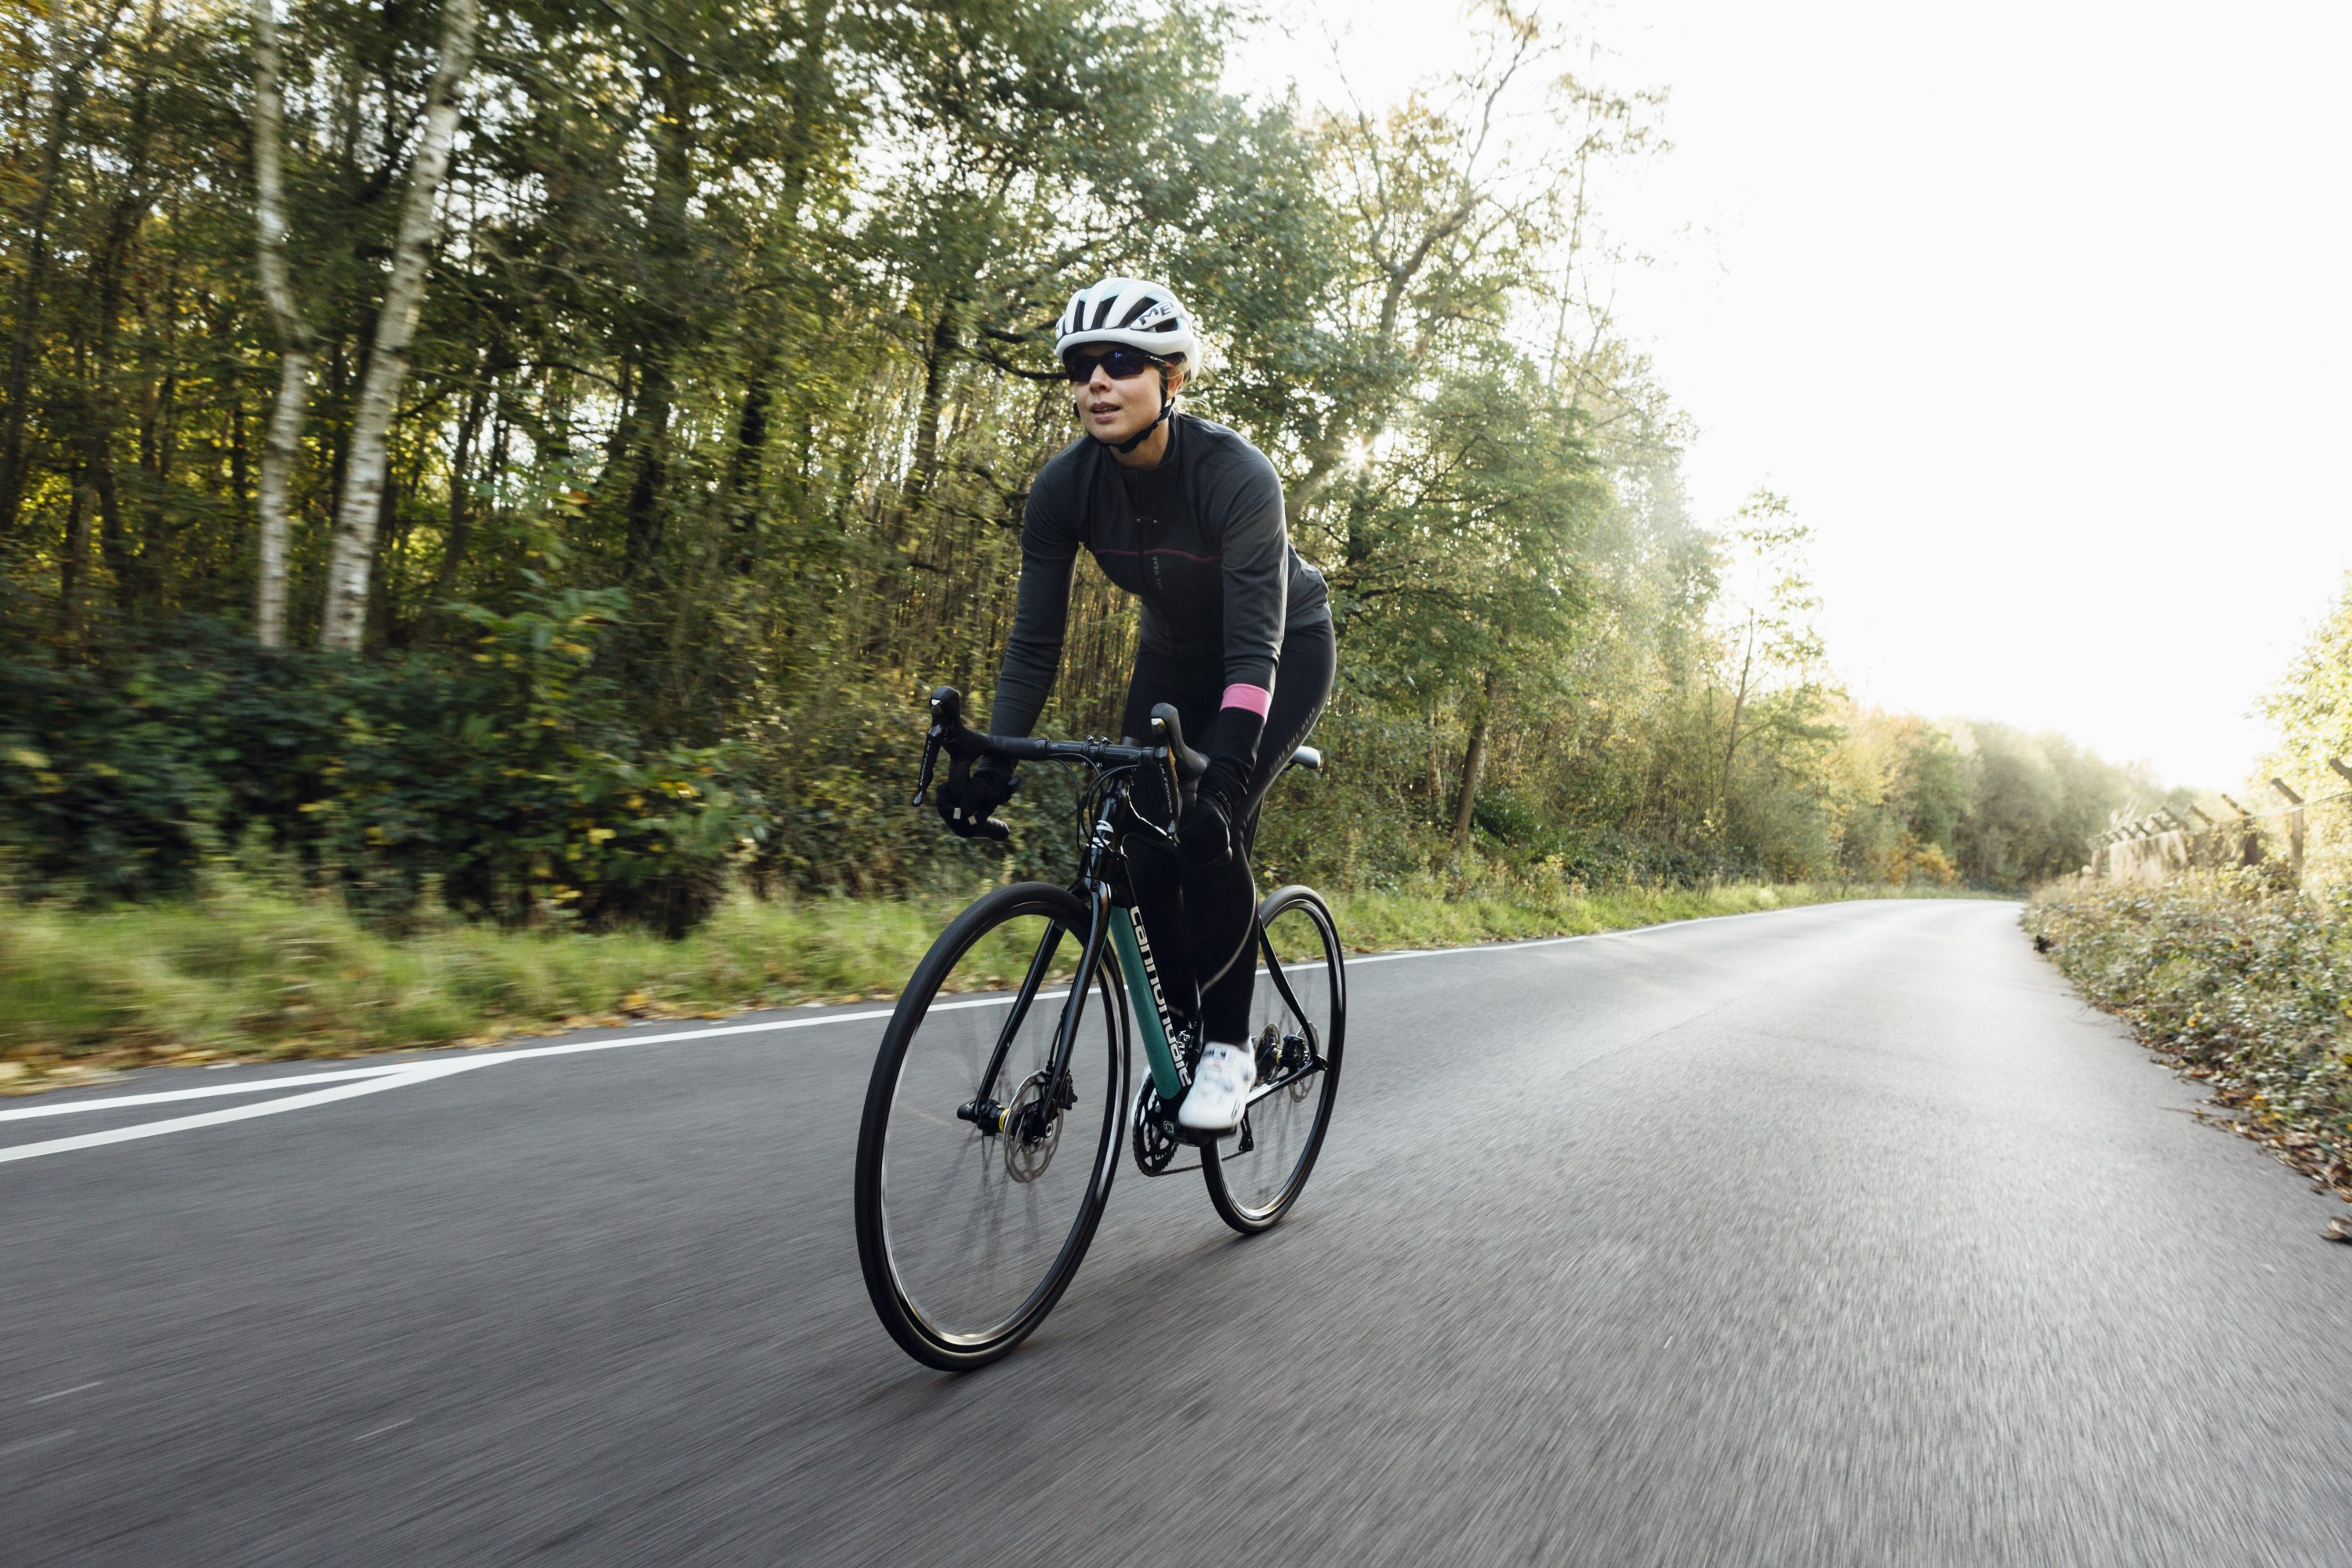 Six best women's road bikes for 2019 and what to look for in a